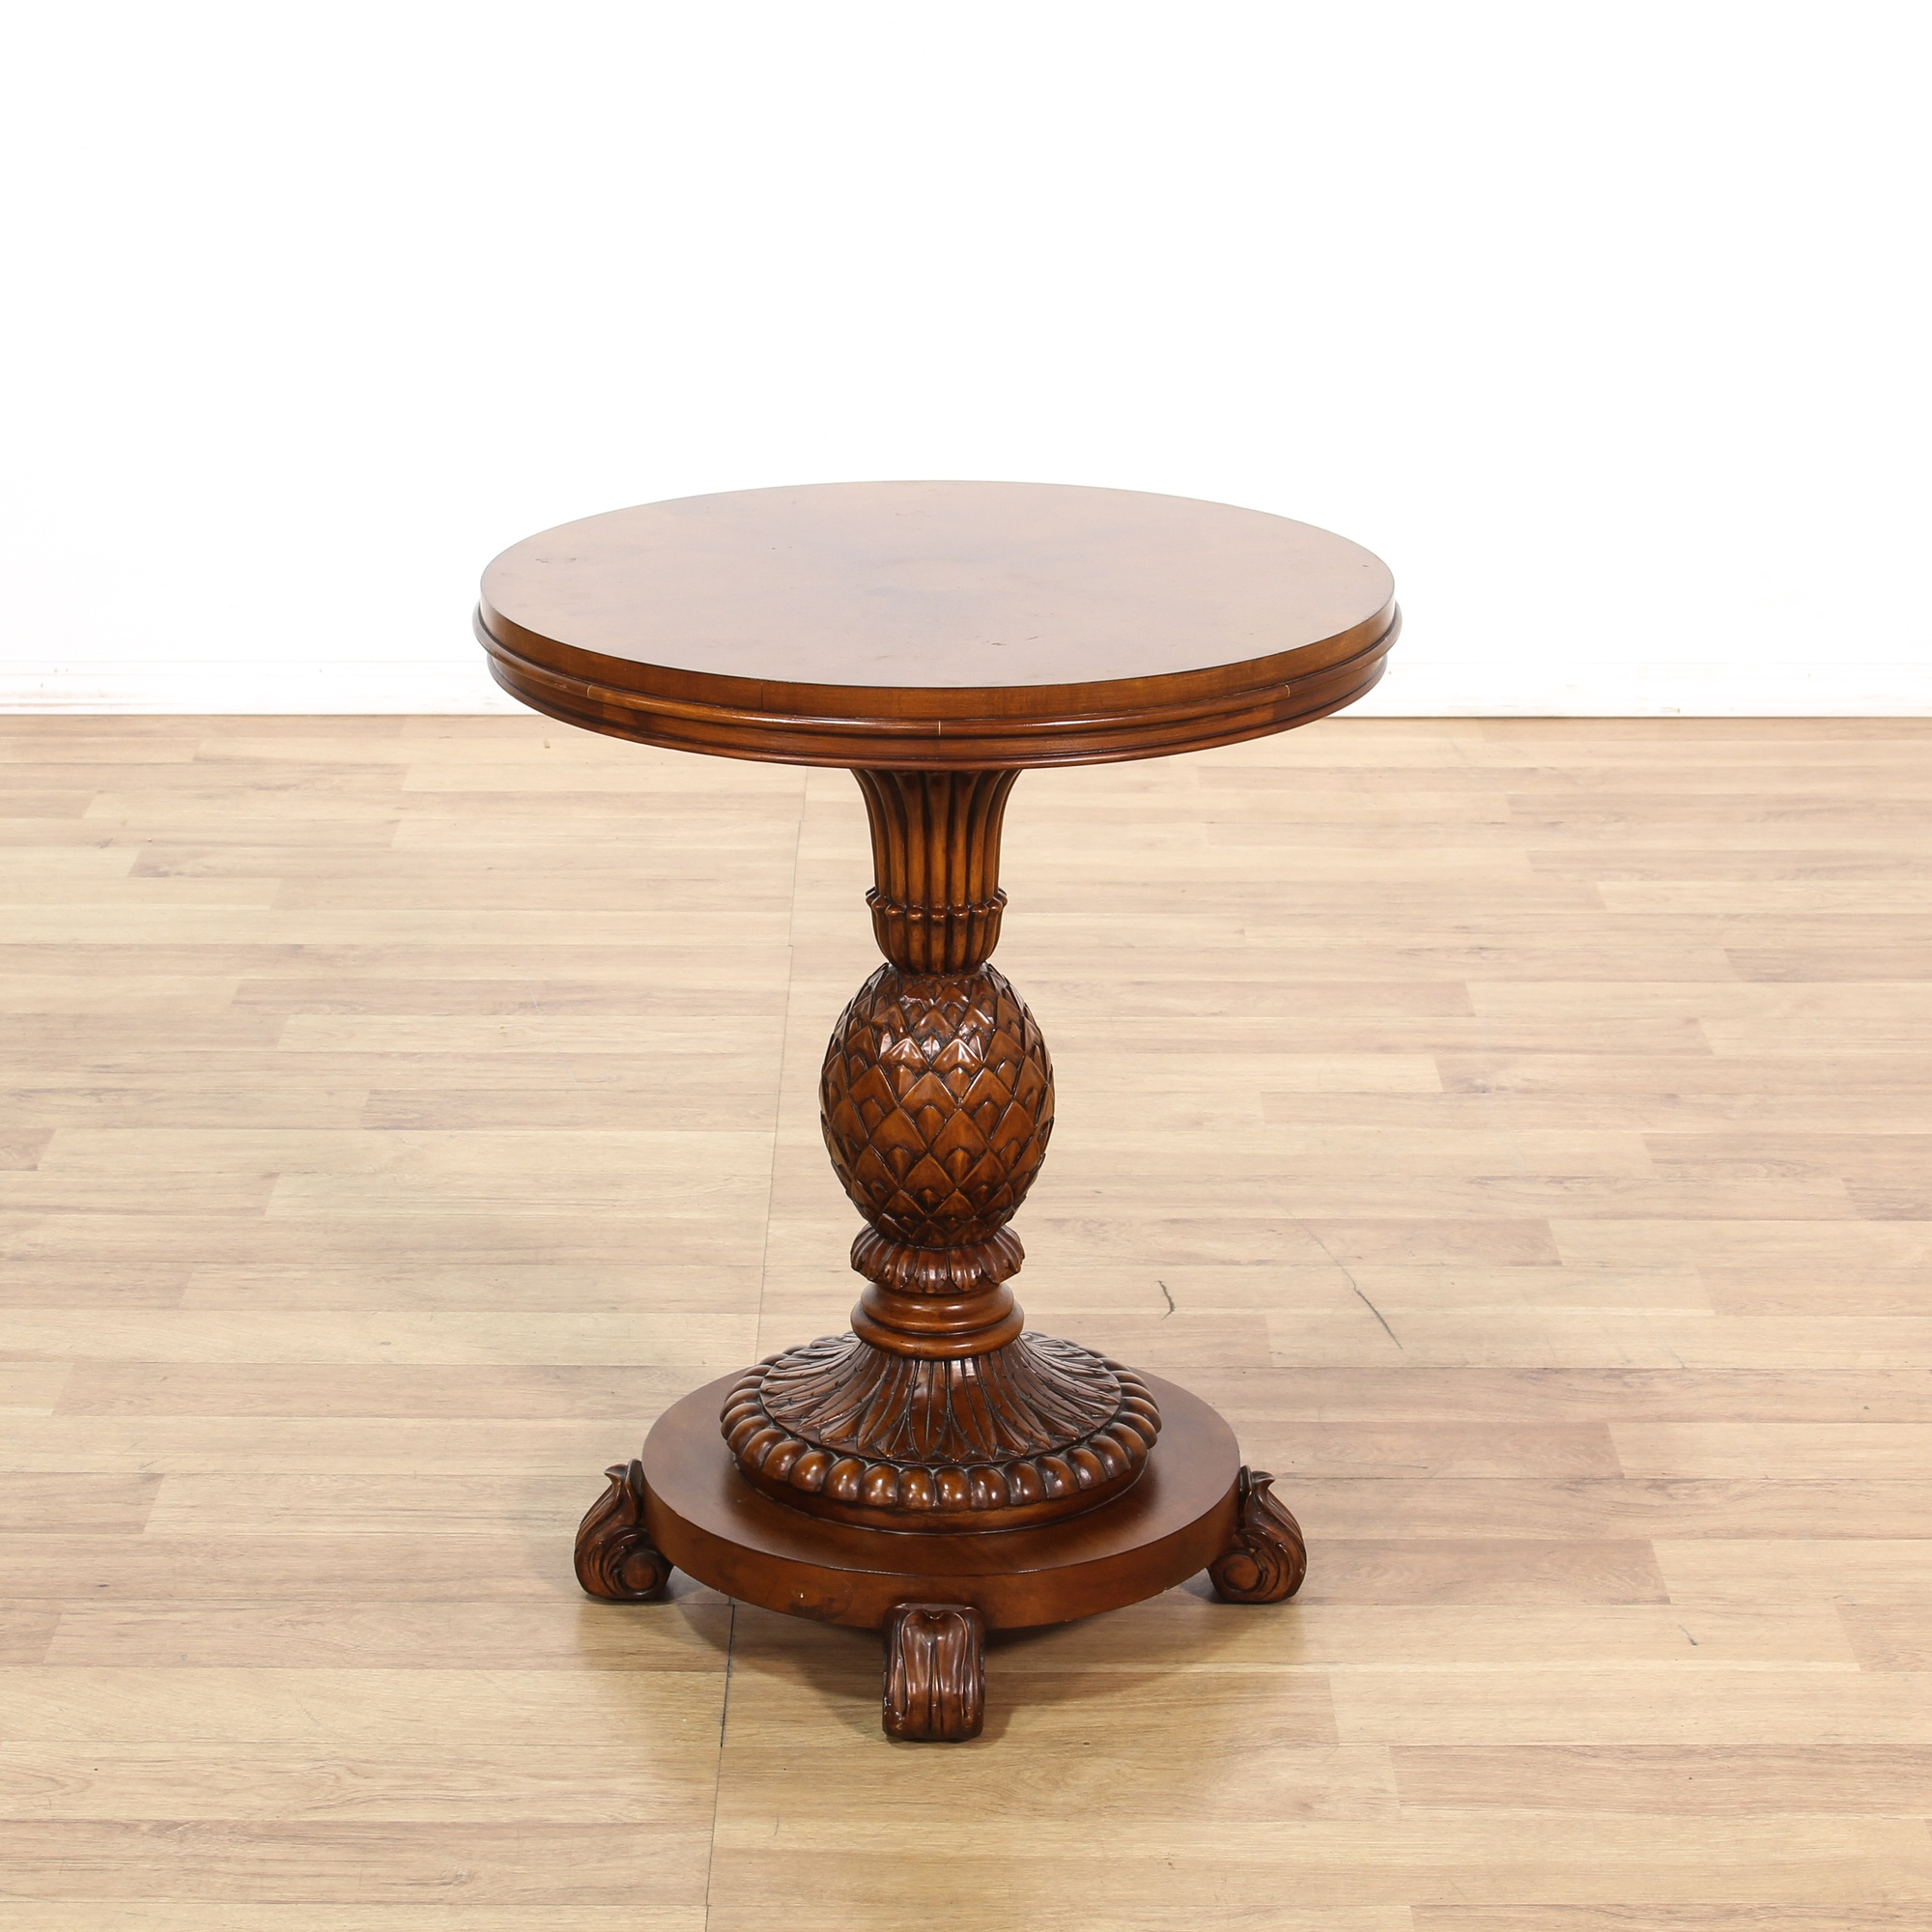 Quot Ethan Allen Quot Pineapple Base Round End Table Loveseat